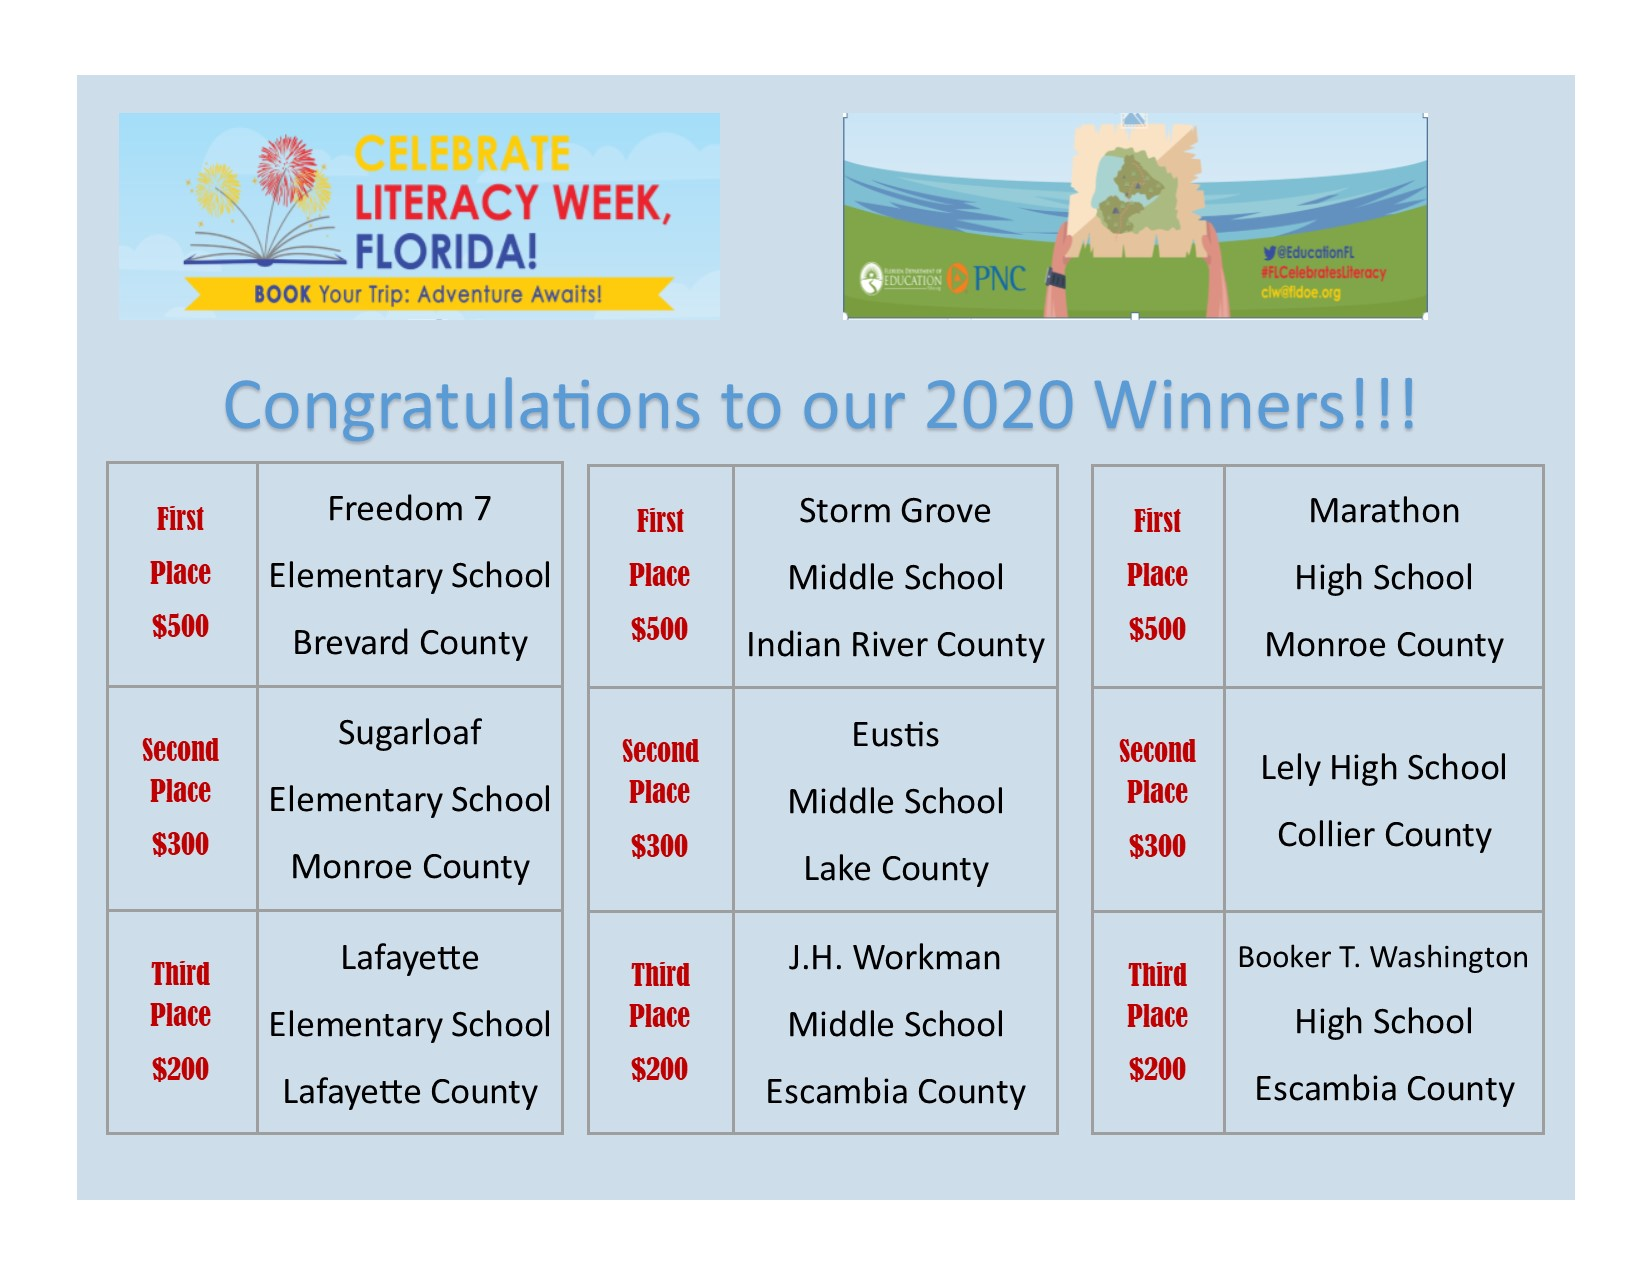 Congratulations to our 2020 Celebrate Literacy Week, Florida! winners!   Elementary  School winners: 1st place - $500 - Freedom 7 Elementary School - Brevard  2nd place - $300 - Sugarloaf Elementary School - Monroe  3rd place - $200 - Lafayette Elementary School - Lafayette  Middle School winners: 1st place - $500 - Storm Grove Elementary School - Indian River 2nd place - $300 - Eustis Middle School - Lake 3rd place - $200 - J.H. Workman Middle School - Escambia  High School winners: 1st place - $500 - Marathon High School - Monroe 2nd place - $300 - Lely High School - Collier 3rd place - $200 - Booker T. Washington High School - Escambia